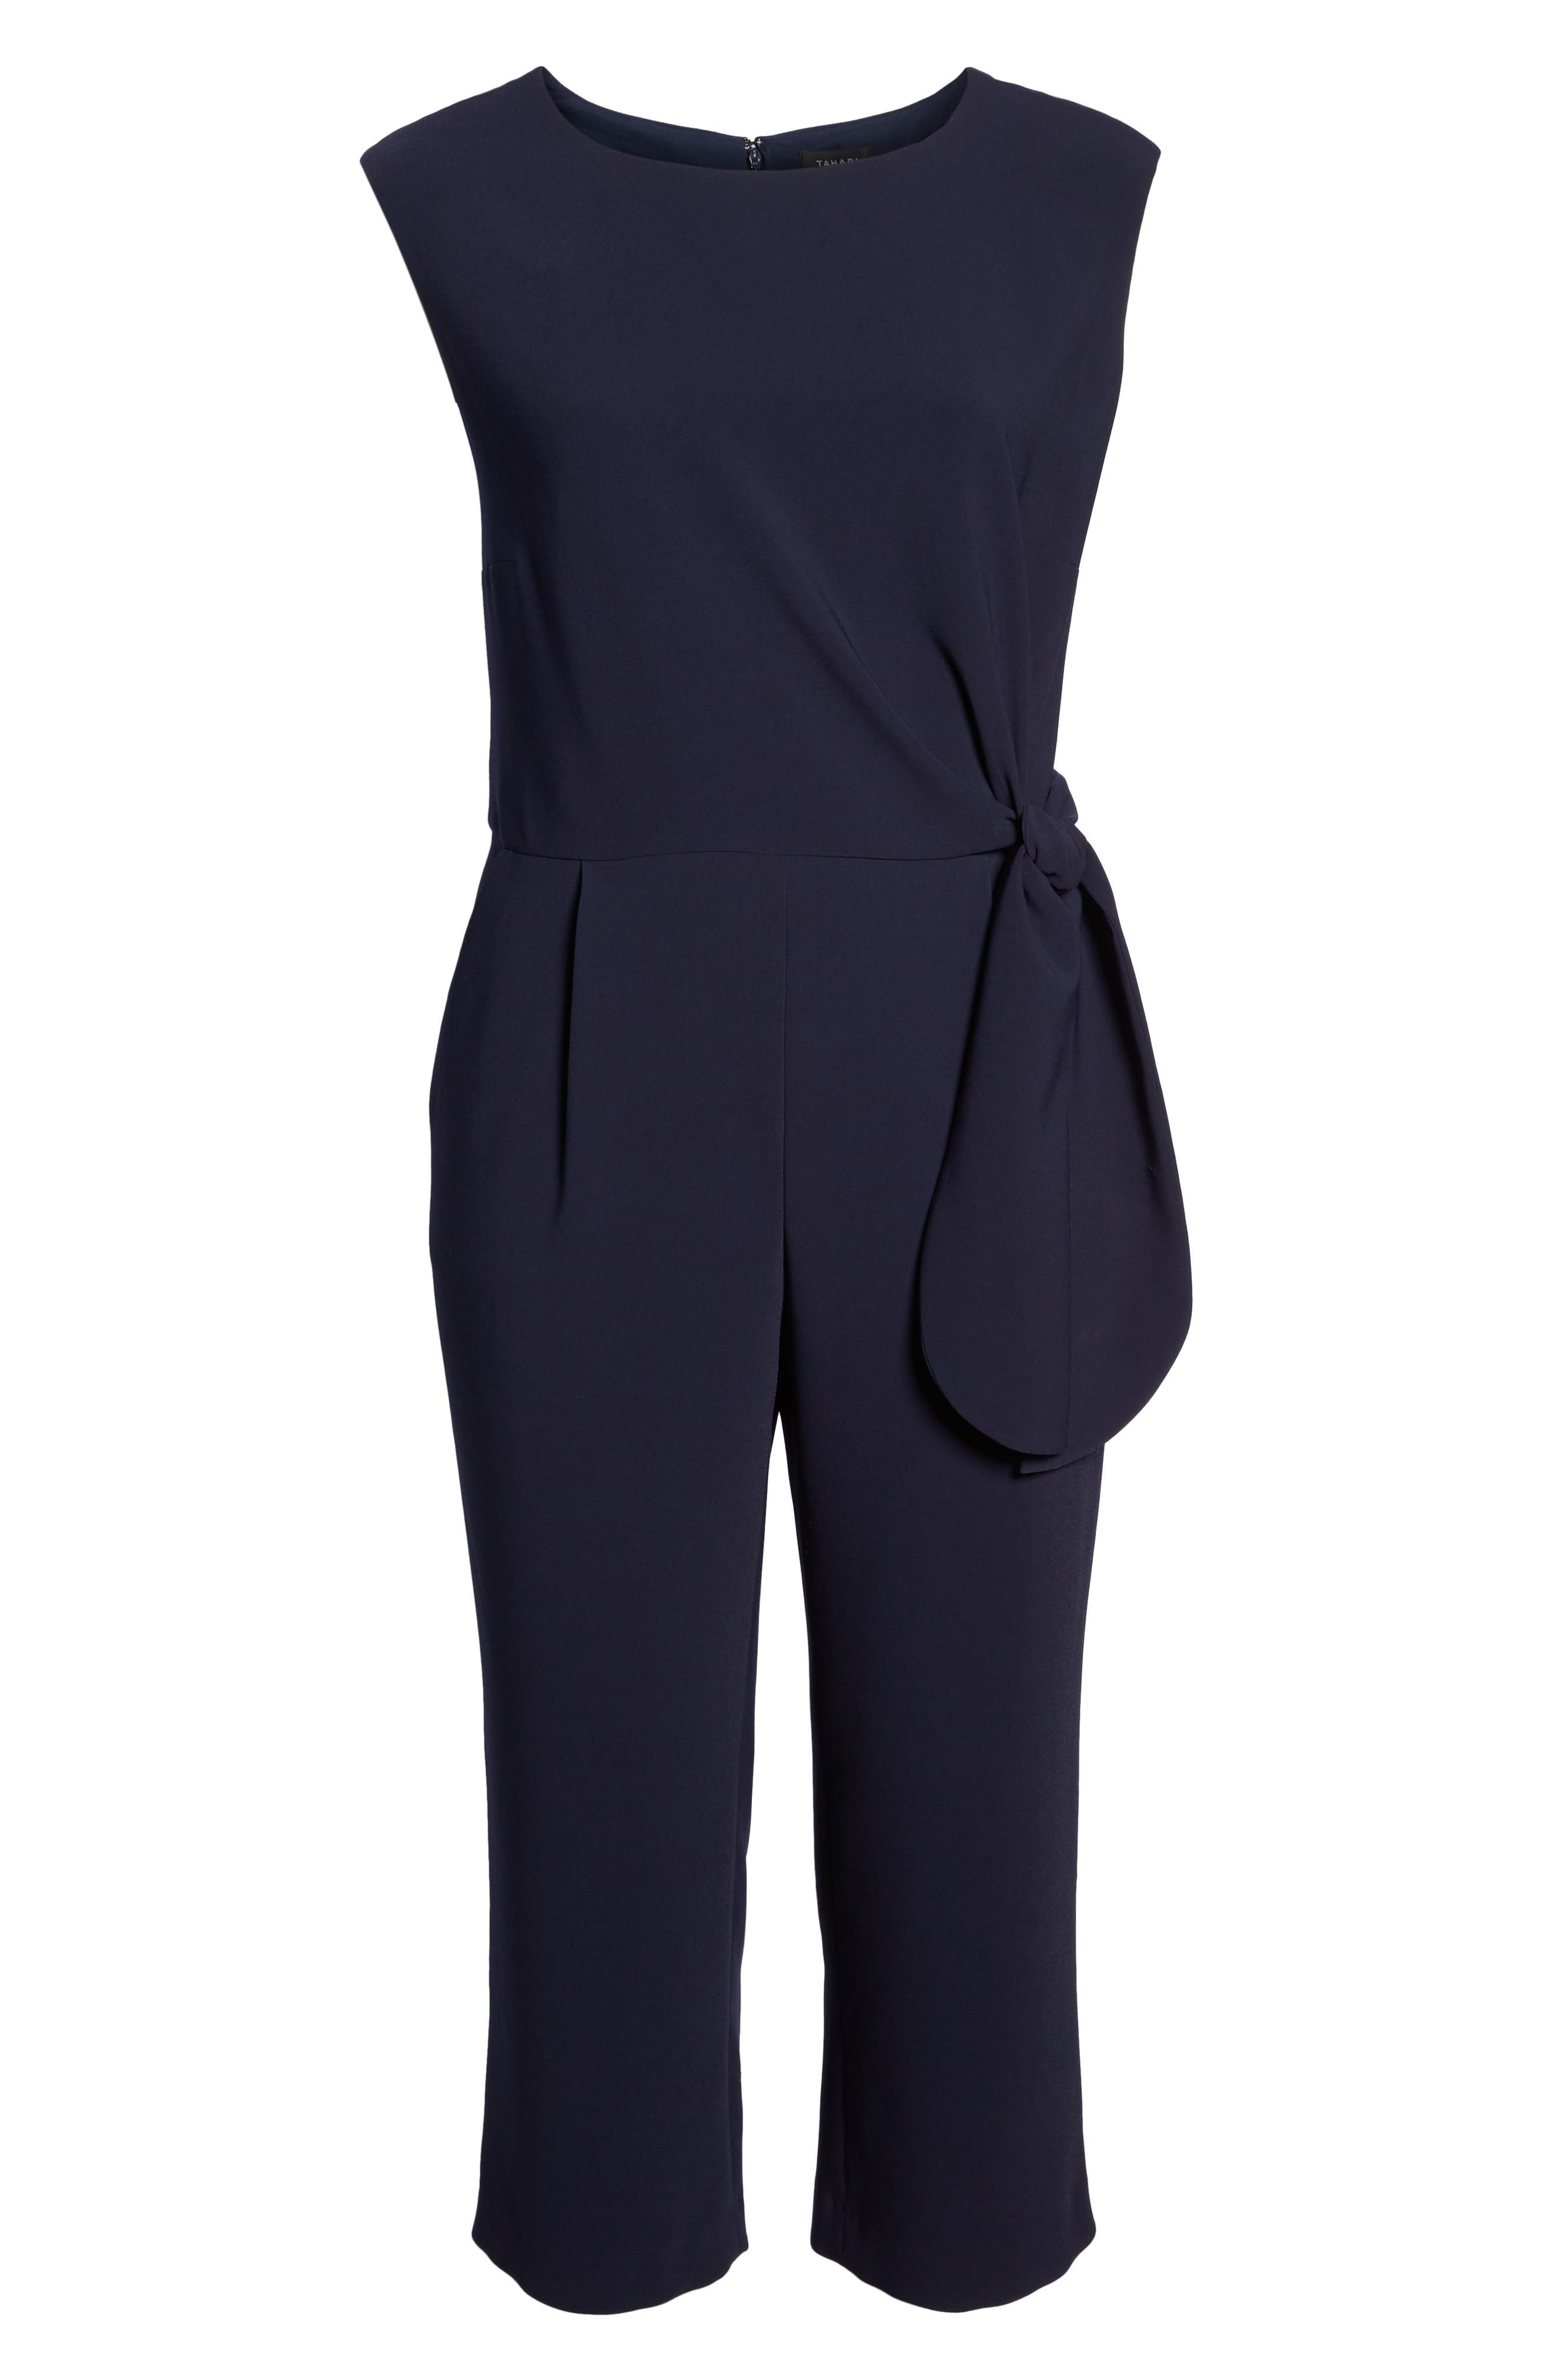 TAHARI, Tie Waist Crop Crepe Jumpsuit, Alternate thumbnail 7, color, NAVY